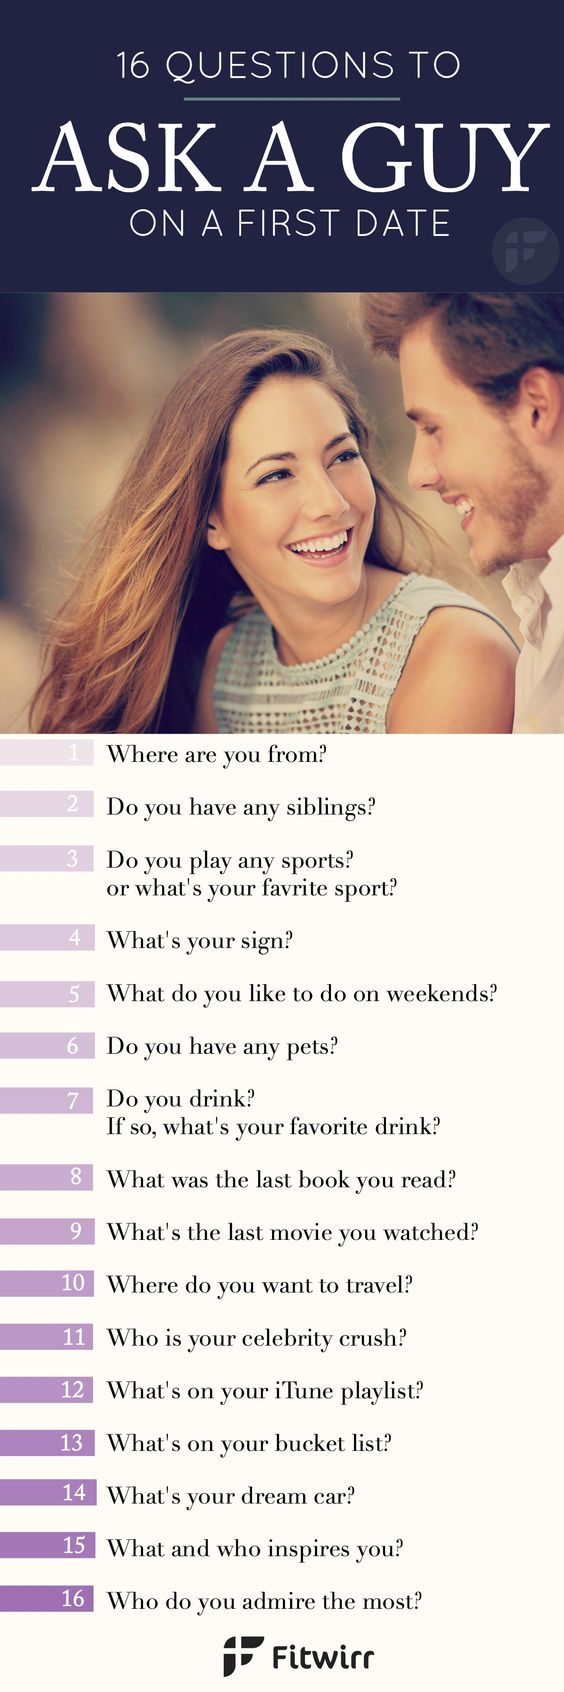 Questions to ask a guy on a first date